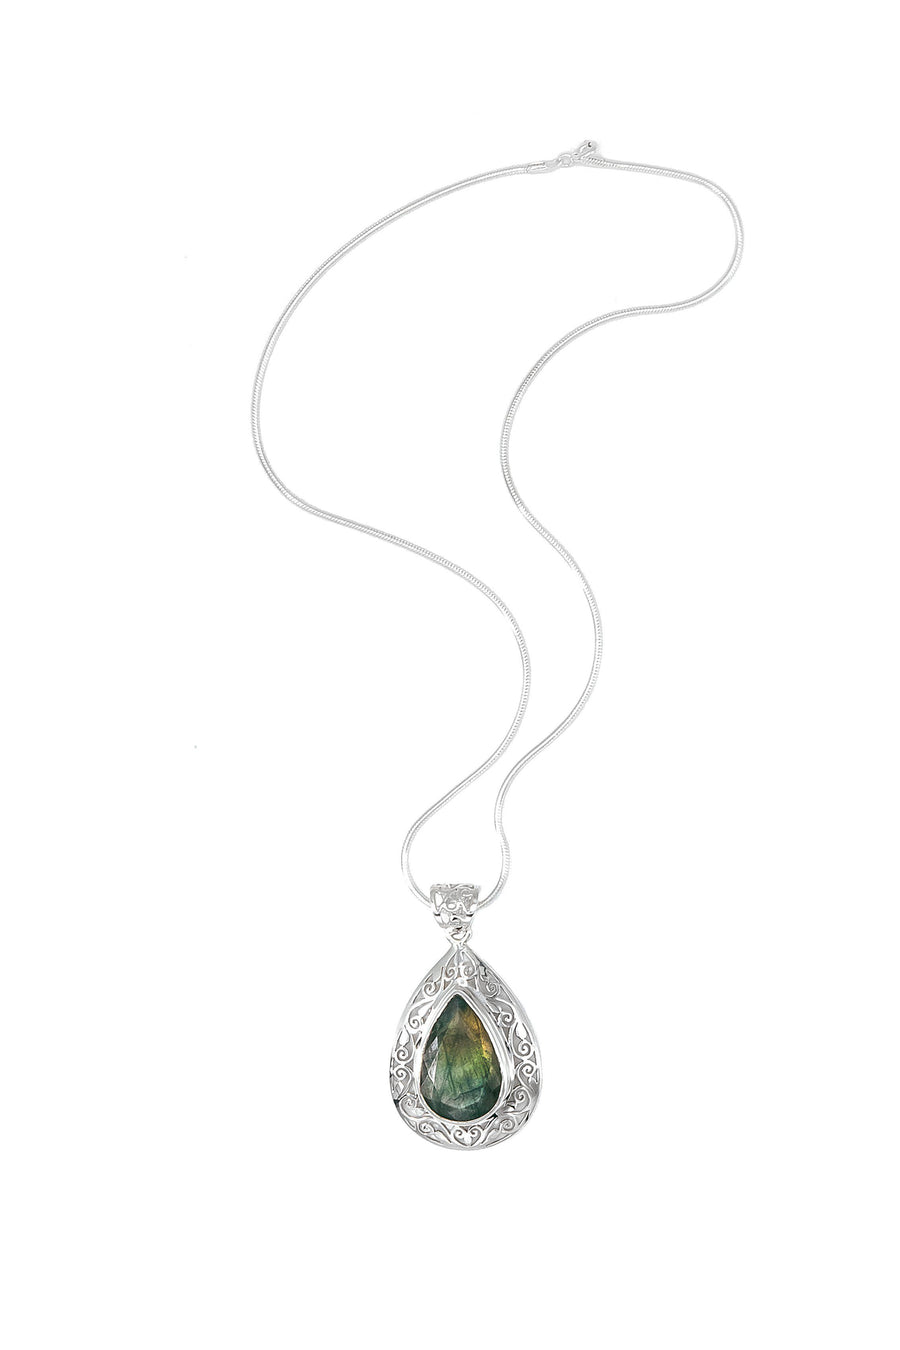 Faceted Labradorite Pendant - Inaya Jewelry